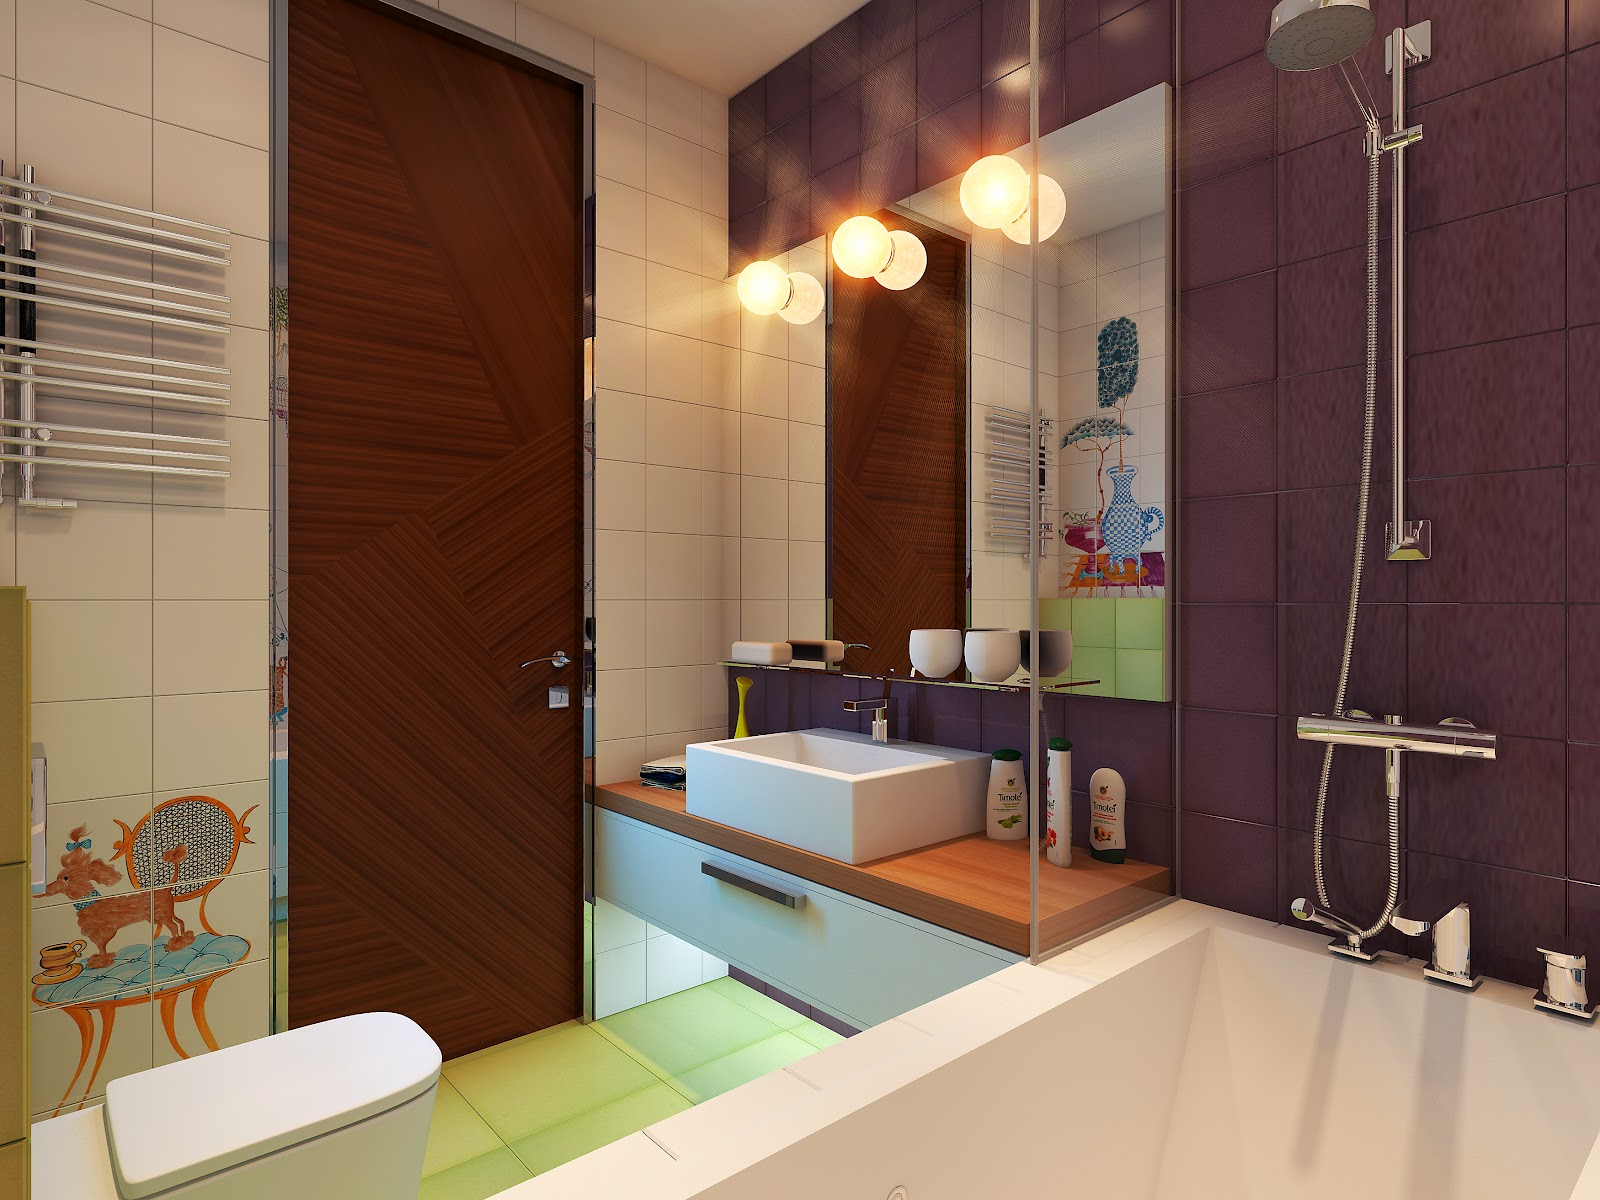 Bathroom Design Visualizer | Home Decorating IdeasBathroom ...